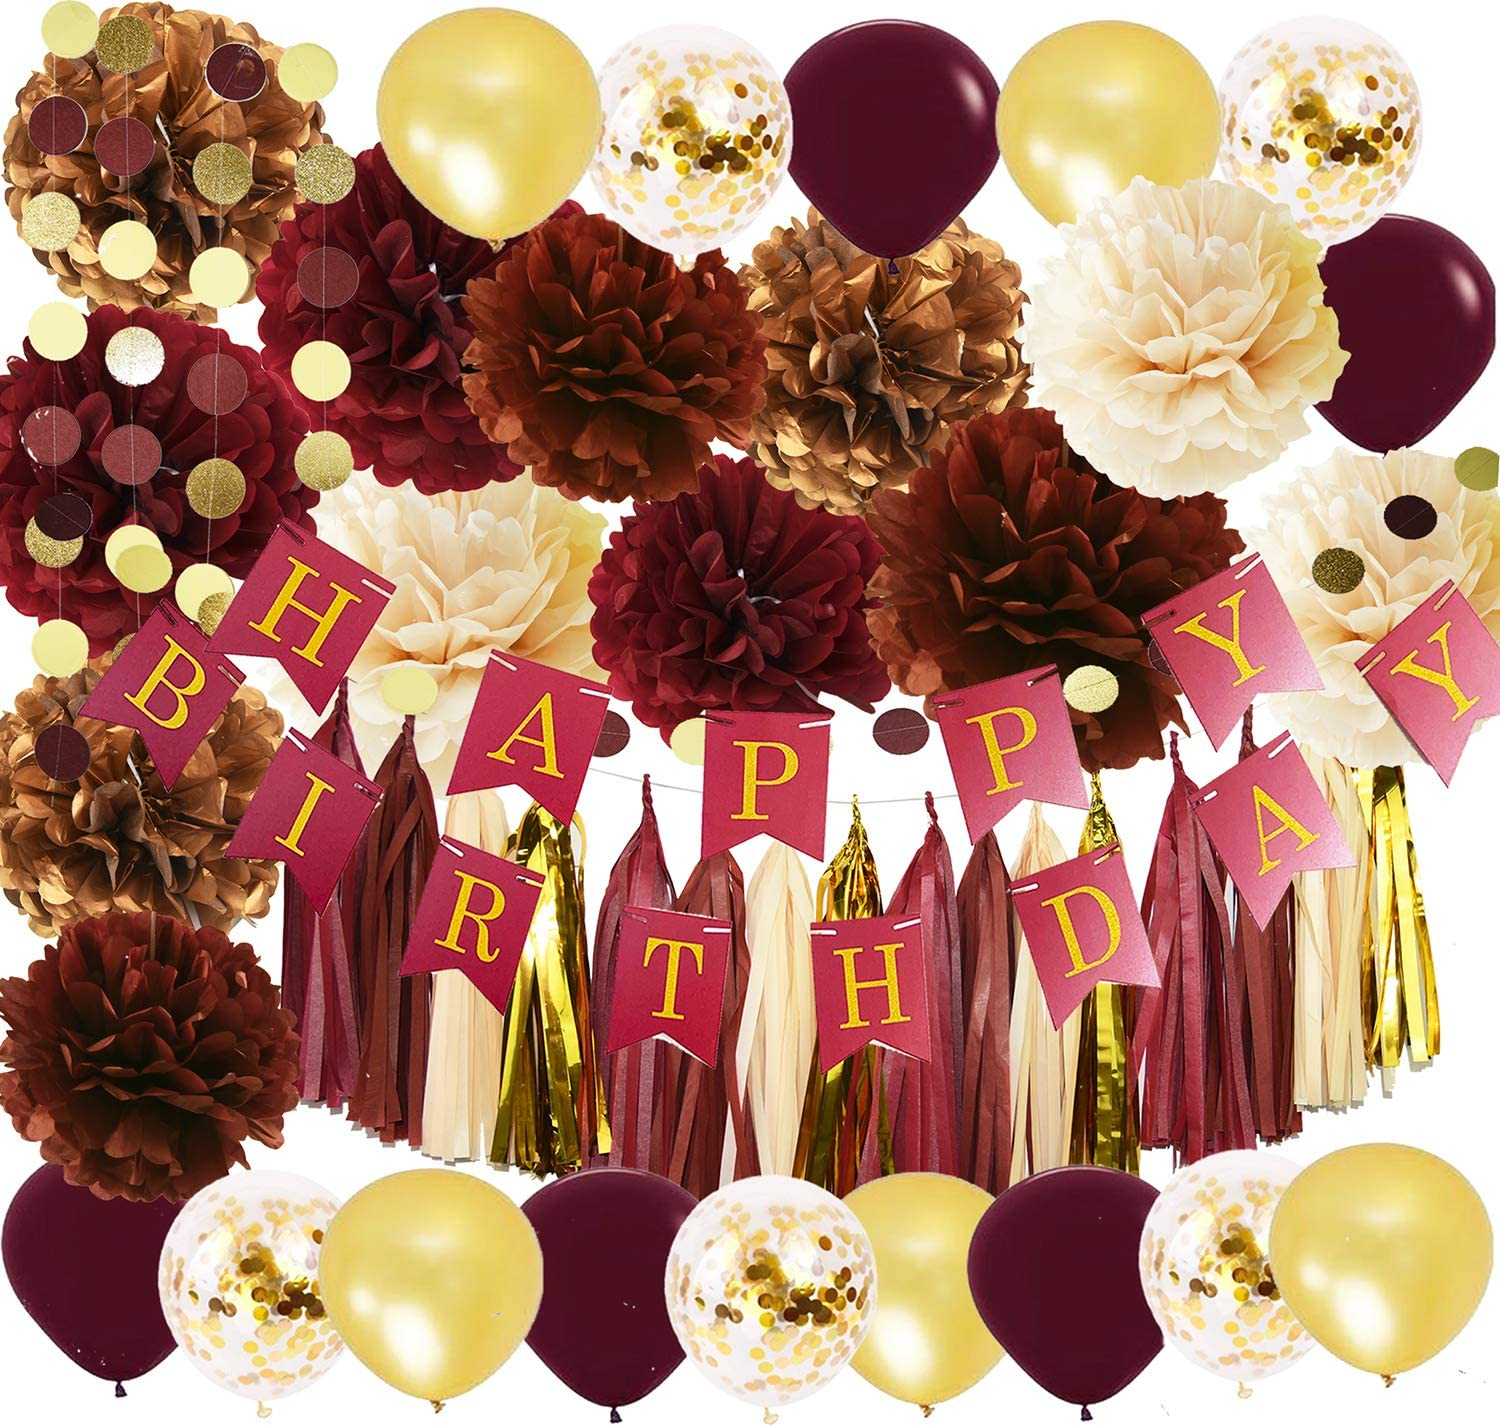 Wine Burgundy Champagne Gold Birthday Party Decorations/Fall Birthday Decor Happy Birthday Banner Maroon Gold Balloons Women Burgundy 30th/40th/50th Birthday Party Decorations